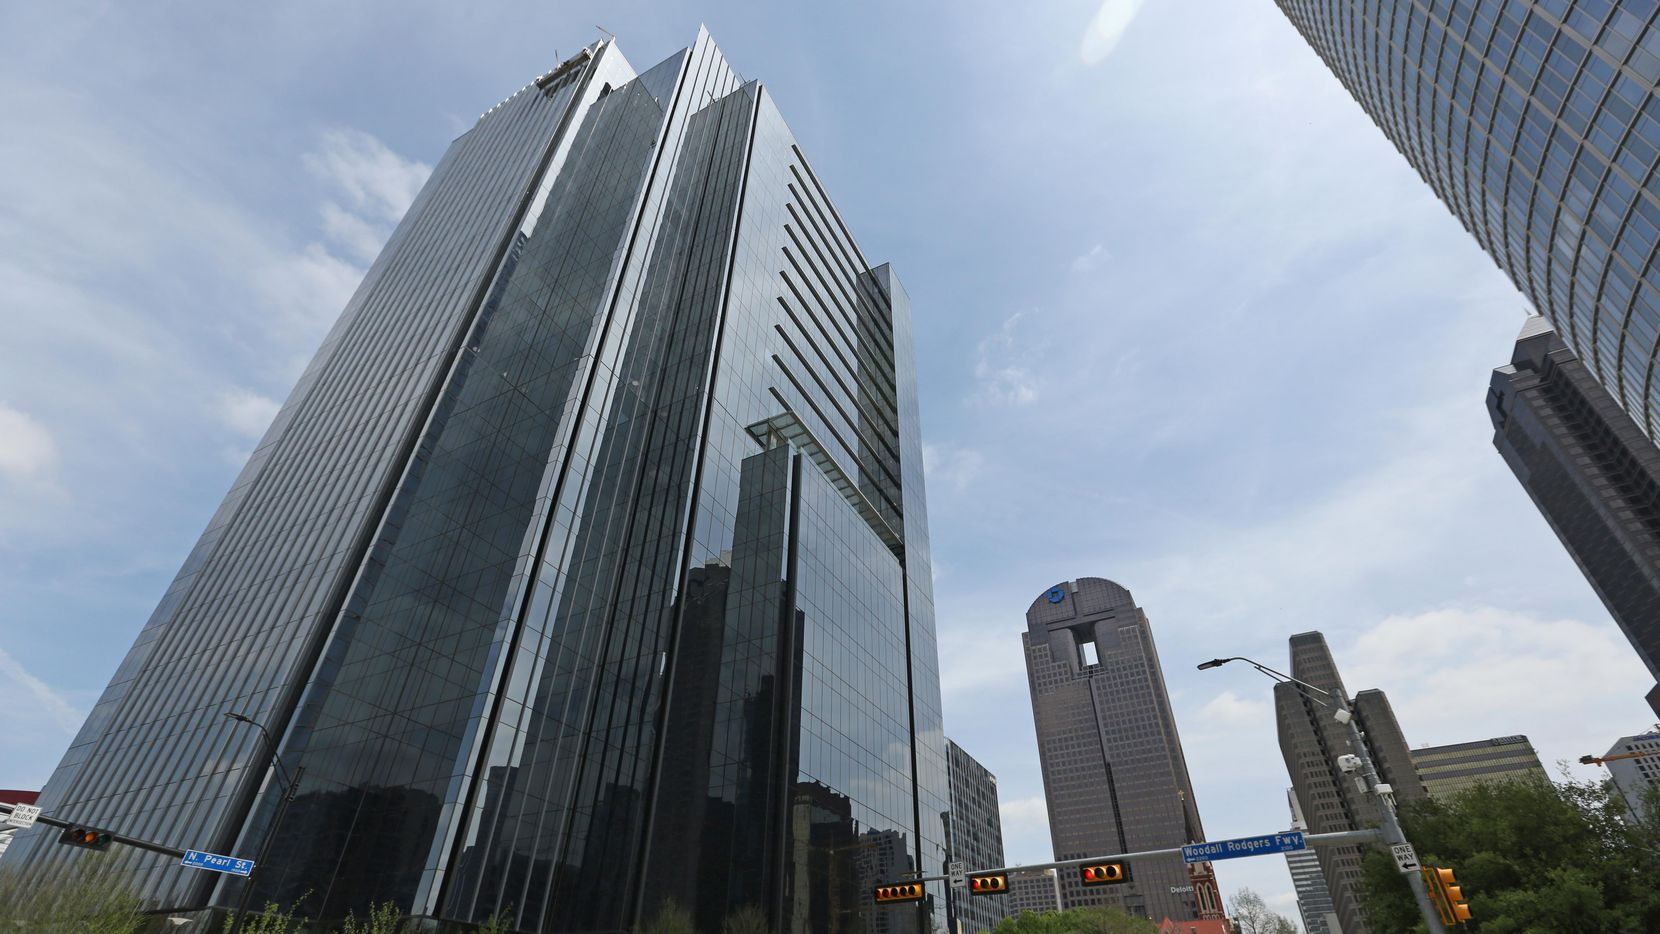 Law firm Husch Blackwell is moving to the new 1900 Pearl tower in downtown Dallas.